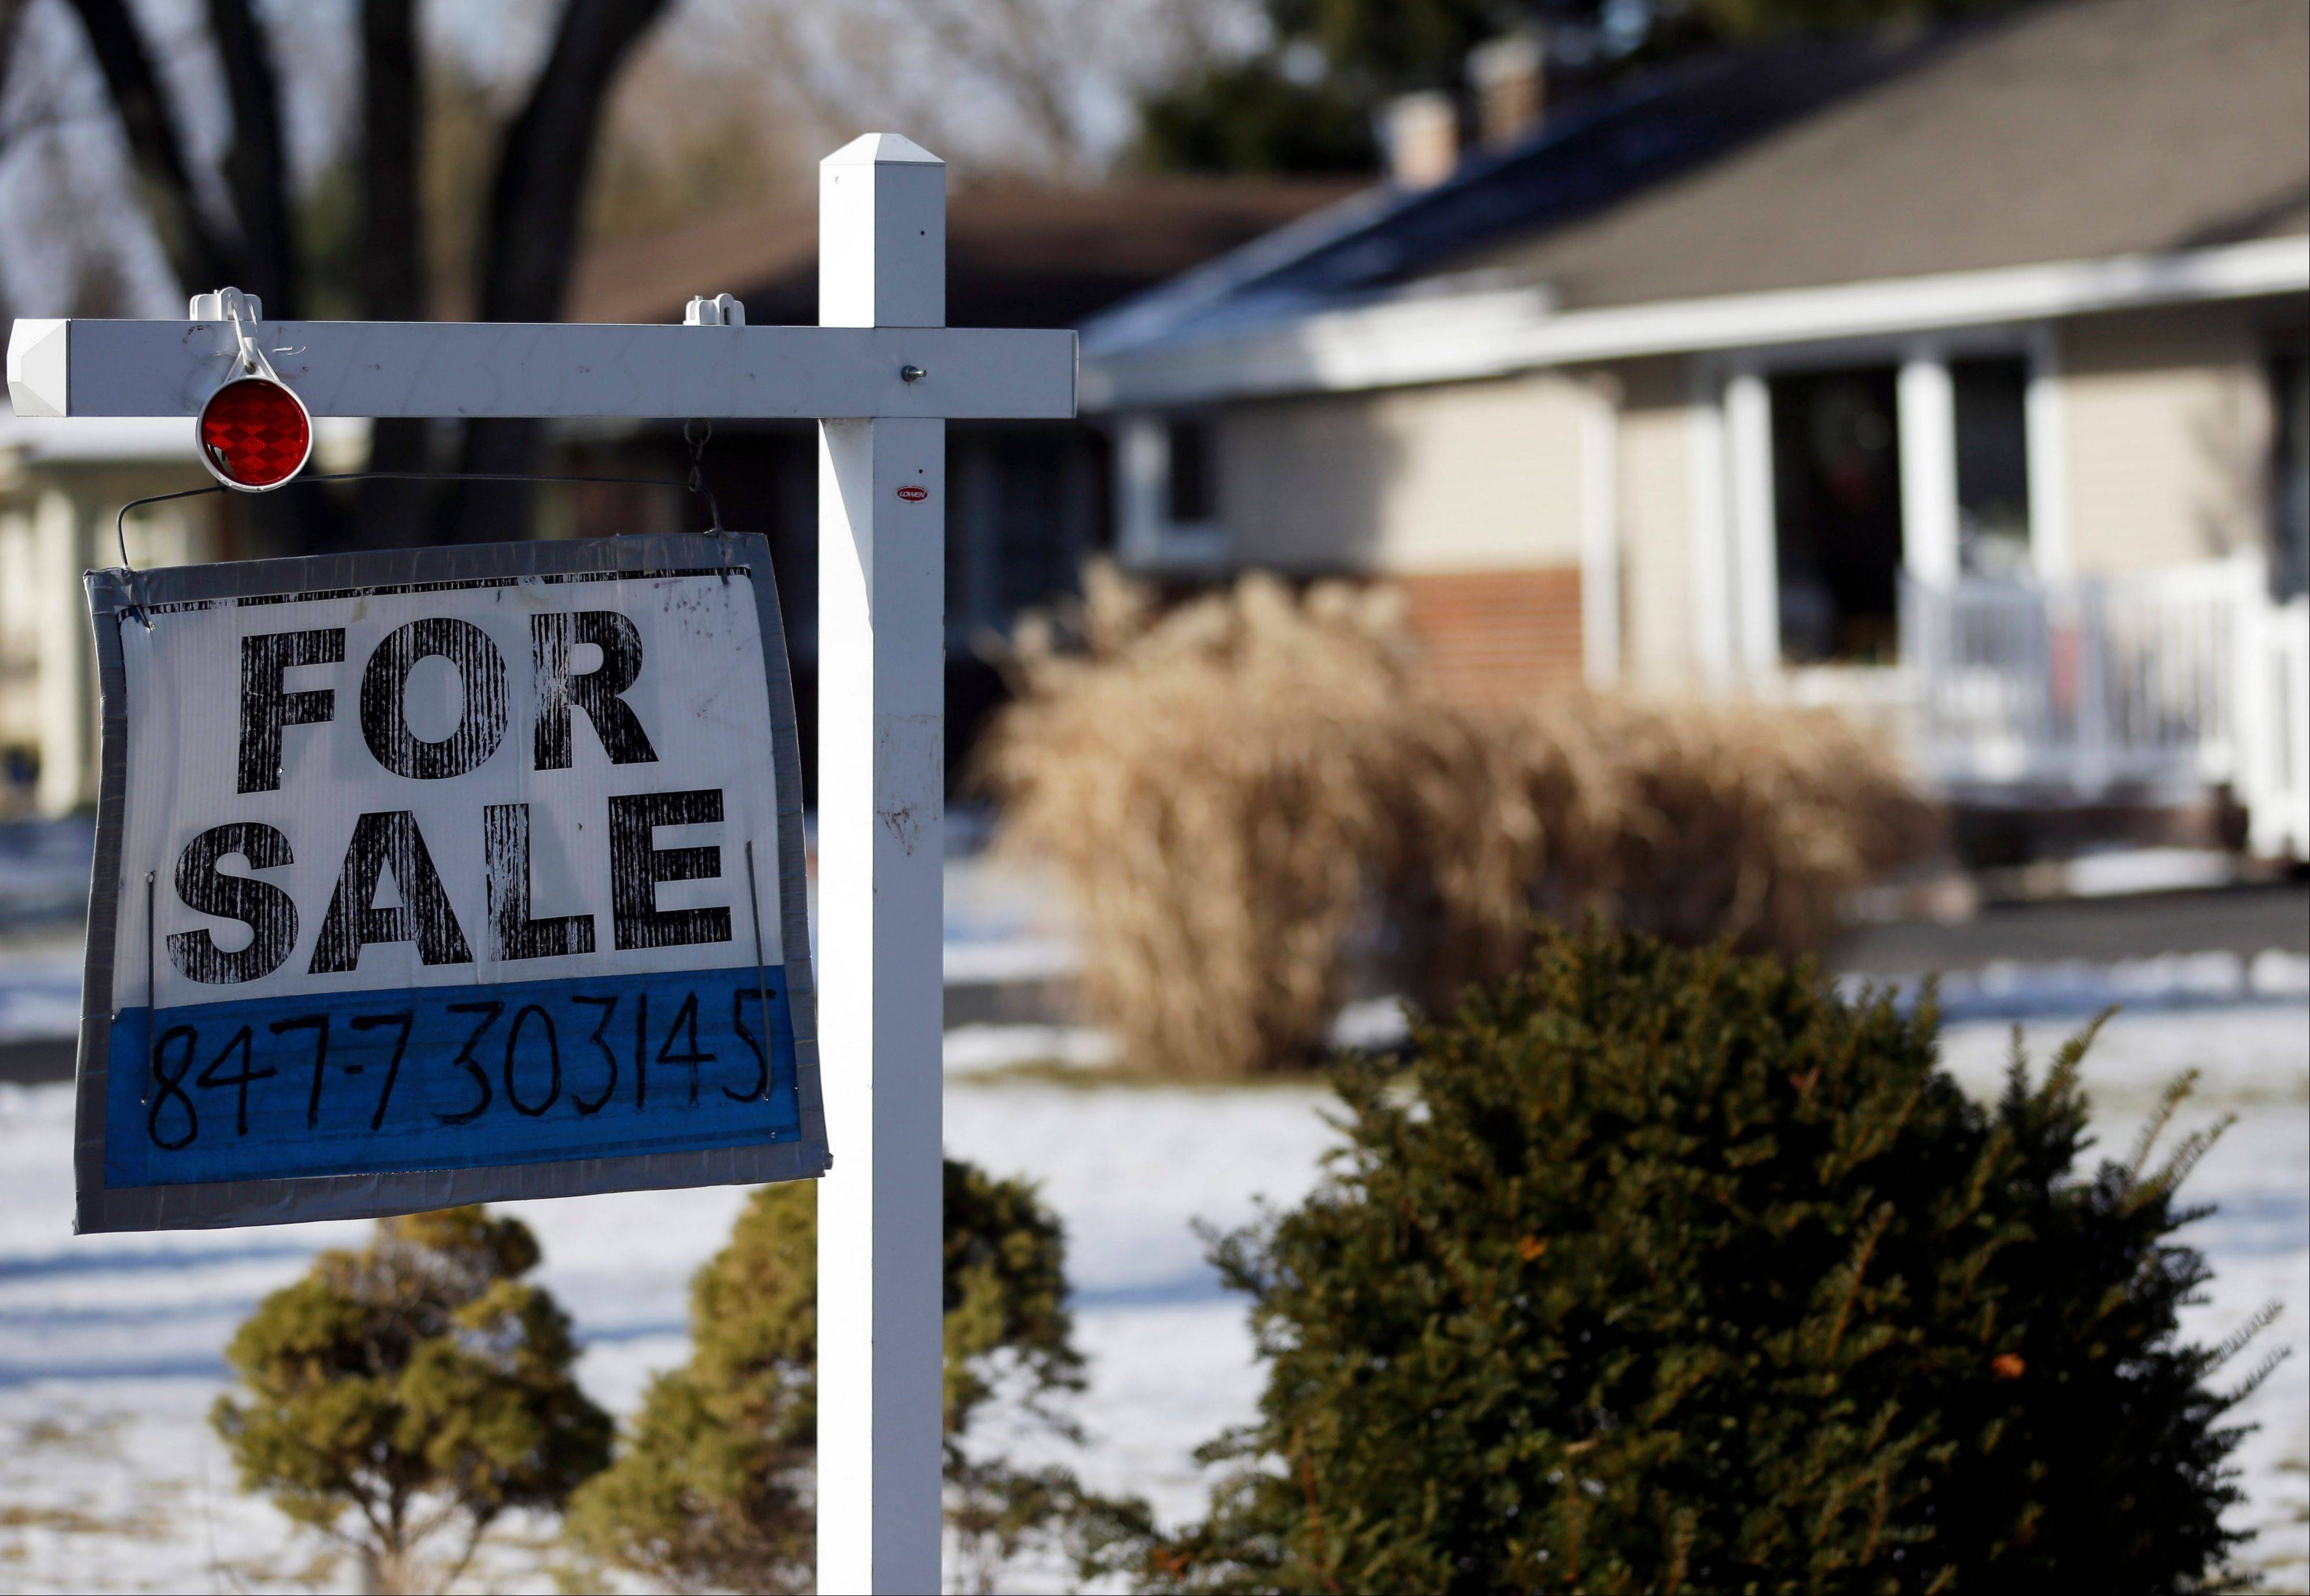 A �for sale� sign outside a home in Glenview, Ill. Five of the biggest U.S. banks have cut struggling homeowners� mortgage balances by $19 billion, part of a total $45.8 billion in relief provided under a landmark settlement over foreclosure abuses.